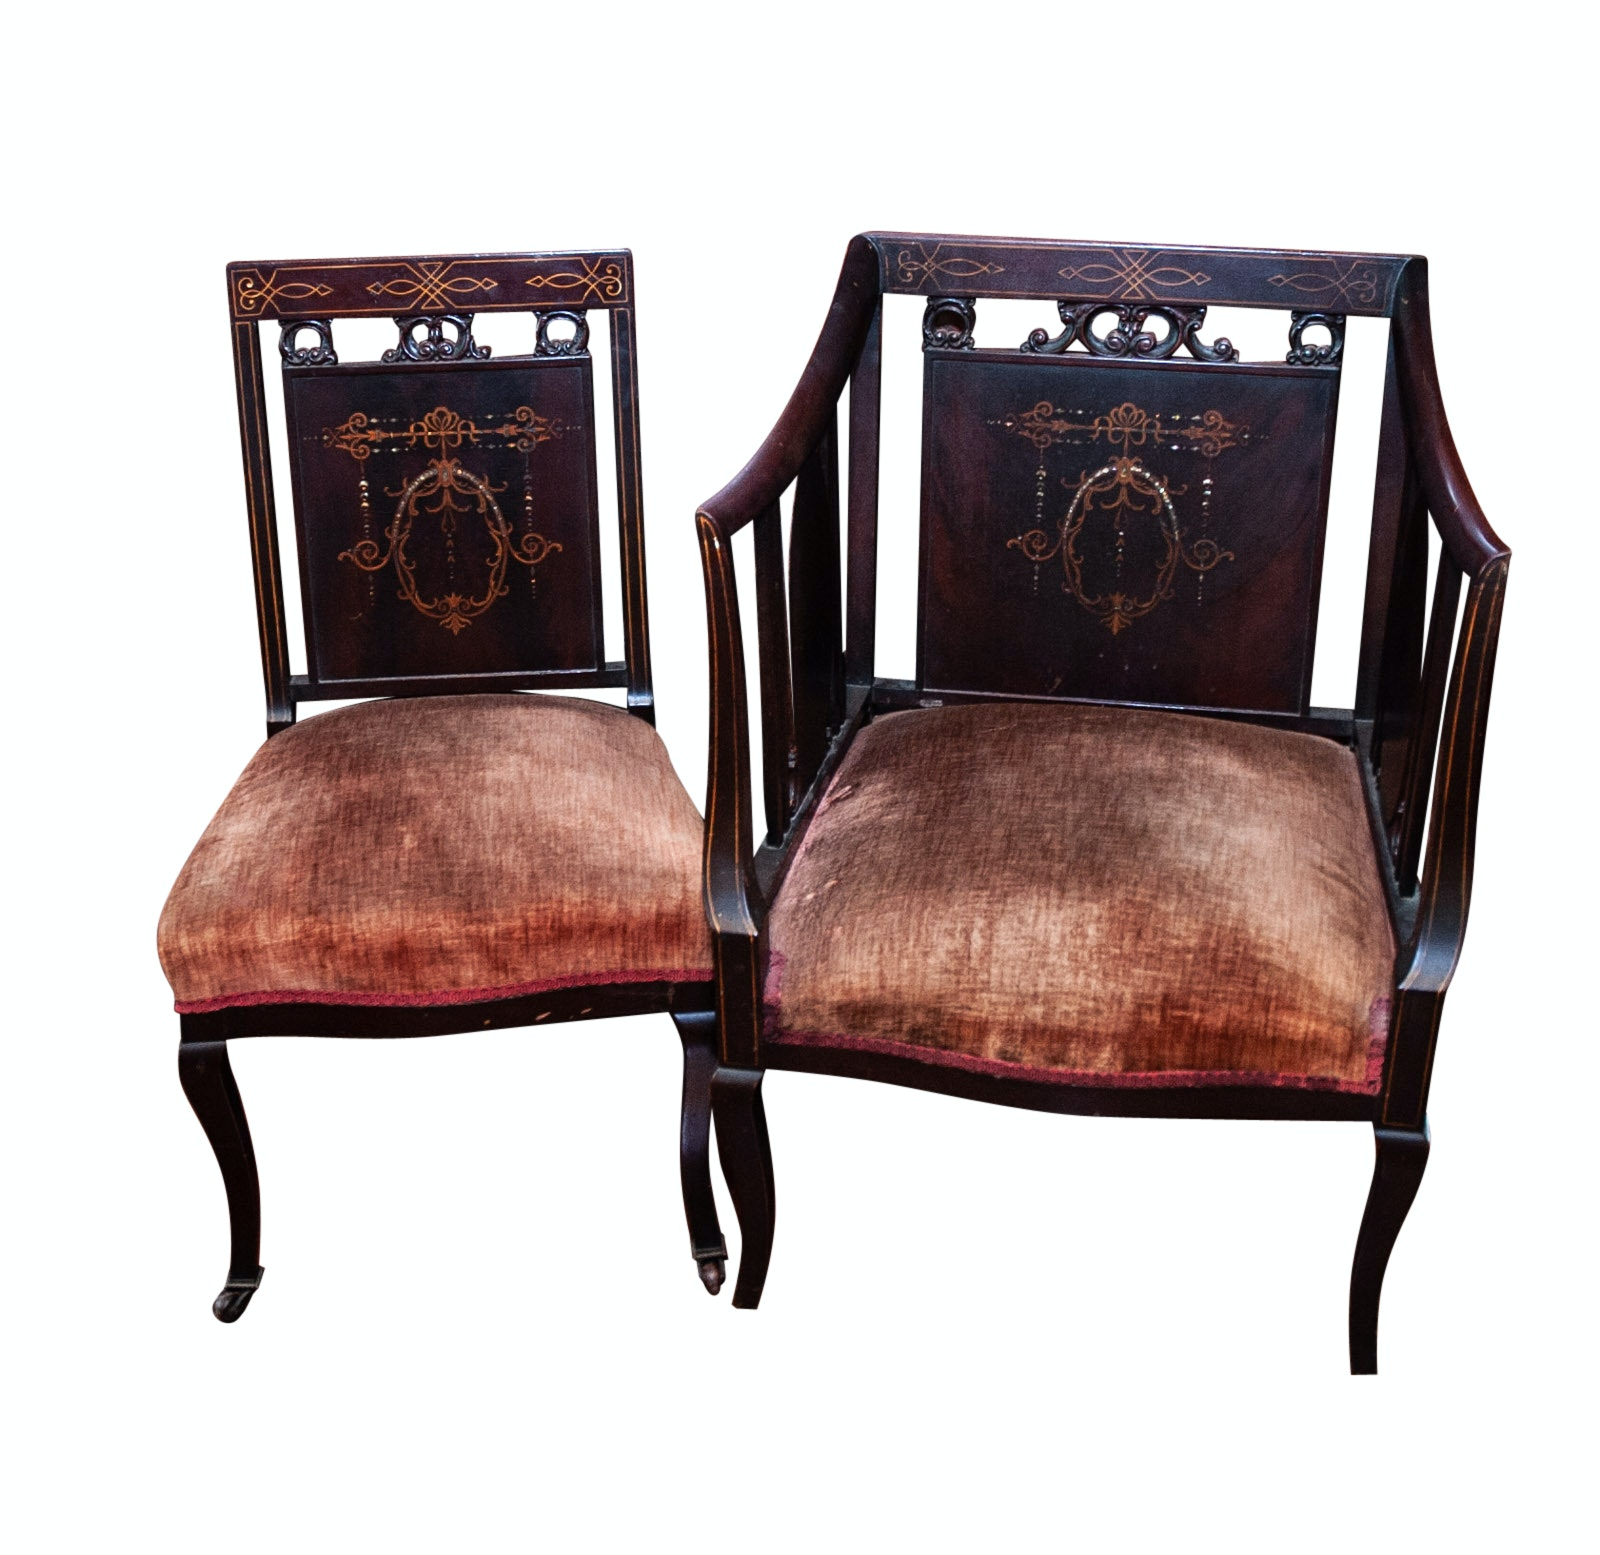 19th Century Regency Style Mahogany Chairs with Marquetry